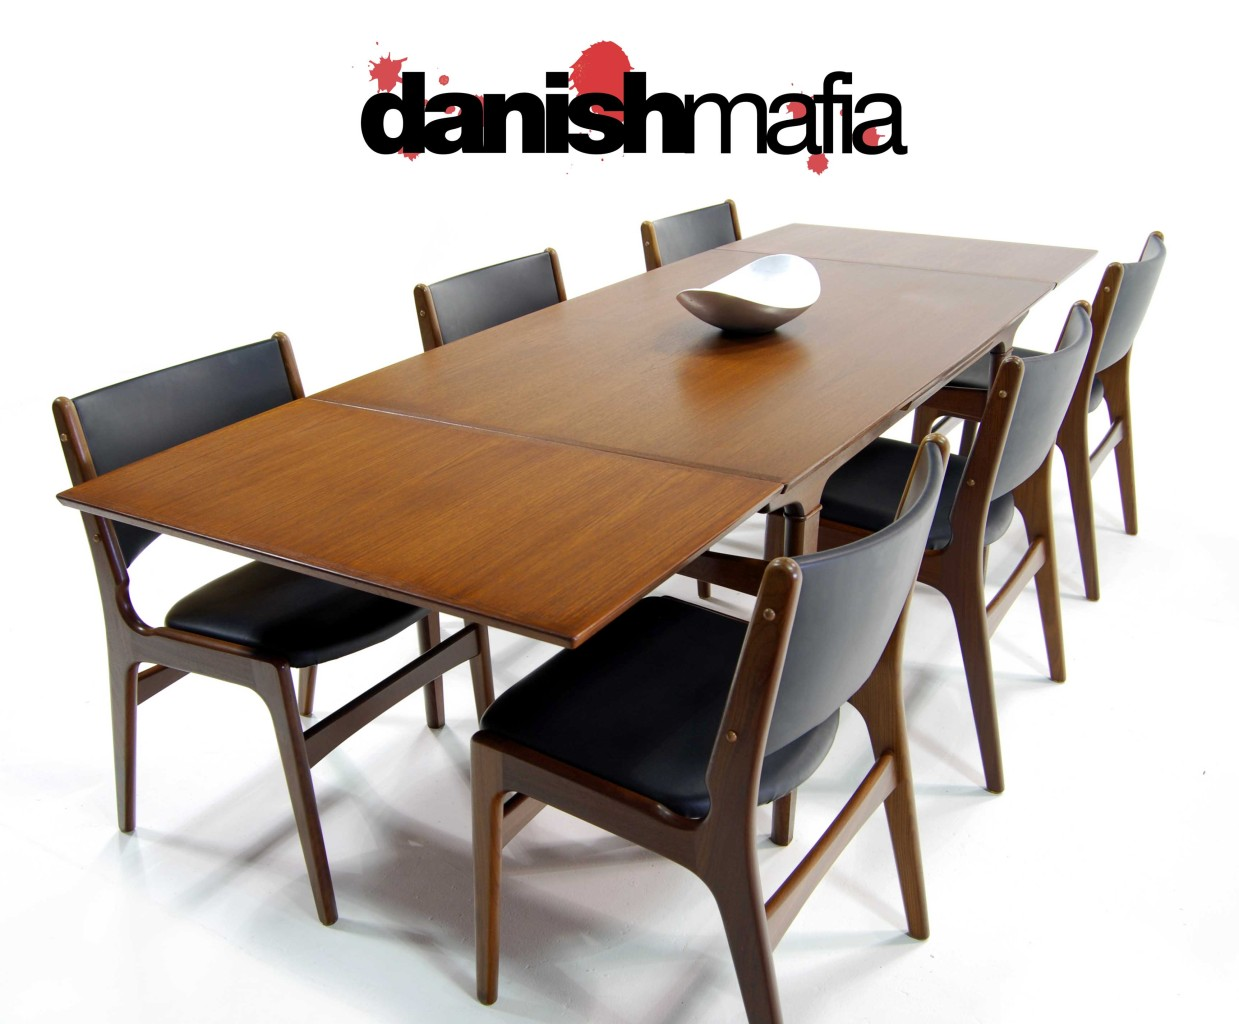 MID CENTURY DANISH MODERN TEAK DINING COMPLETE SET TABLE 6 CHAIRS EAMES